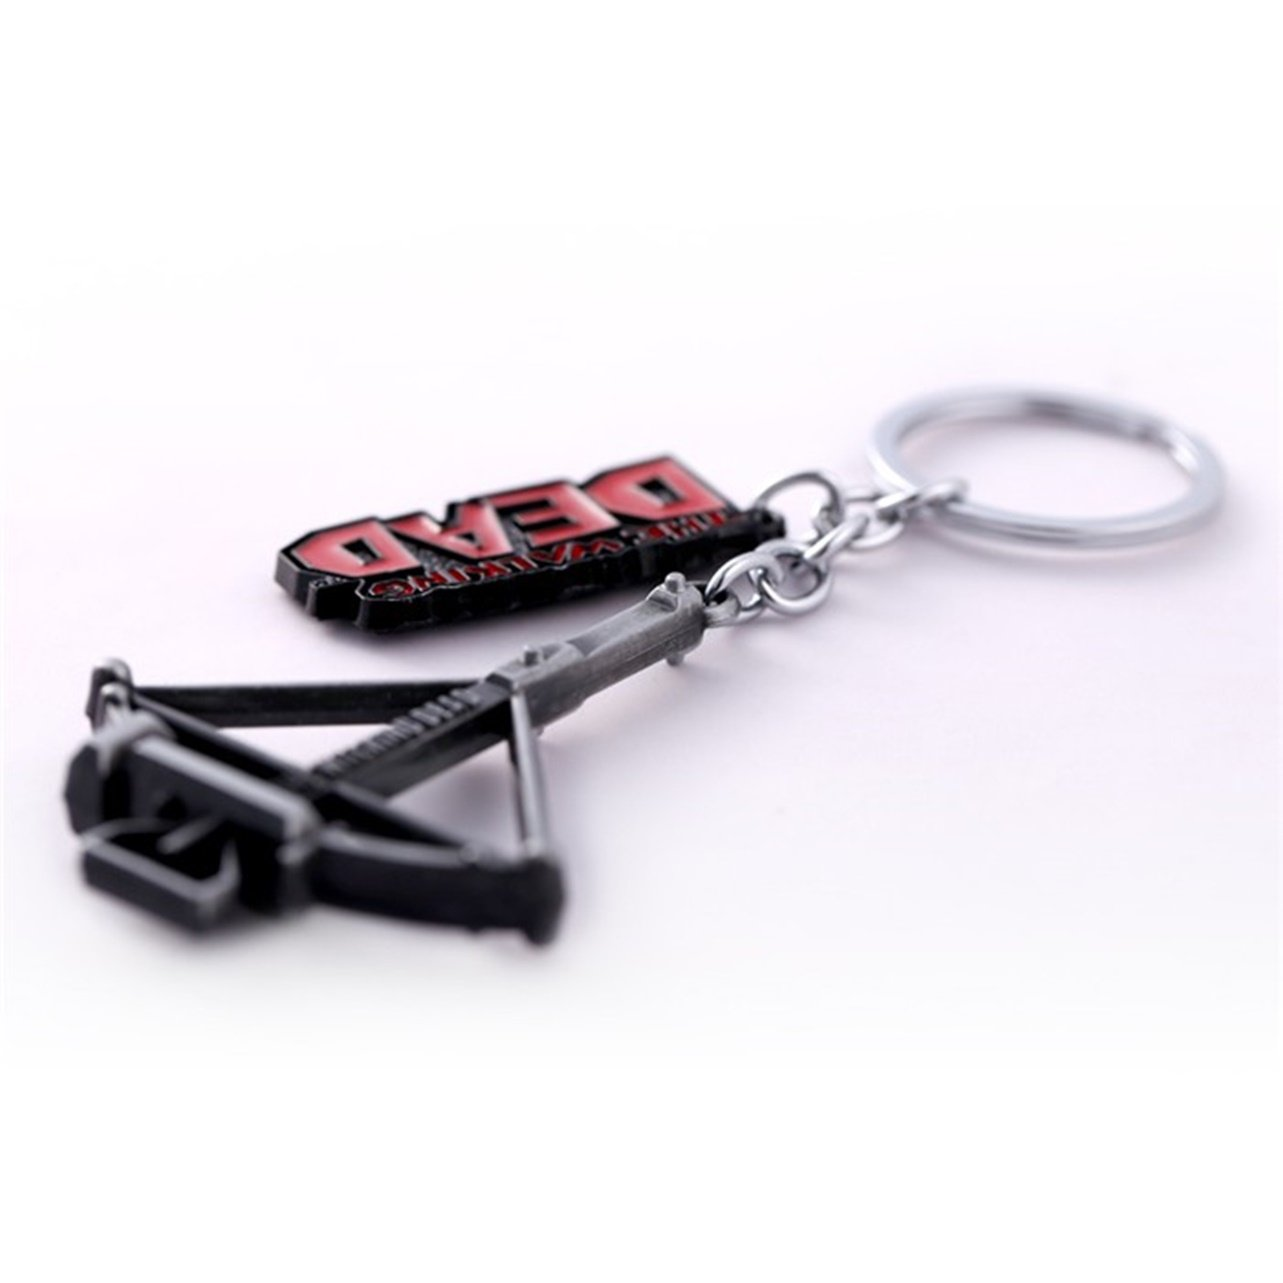 Amazon.com : 1 Pc Mini Pocket Walking Dead Zombies Keychain ...